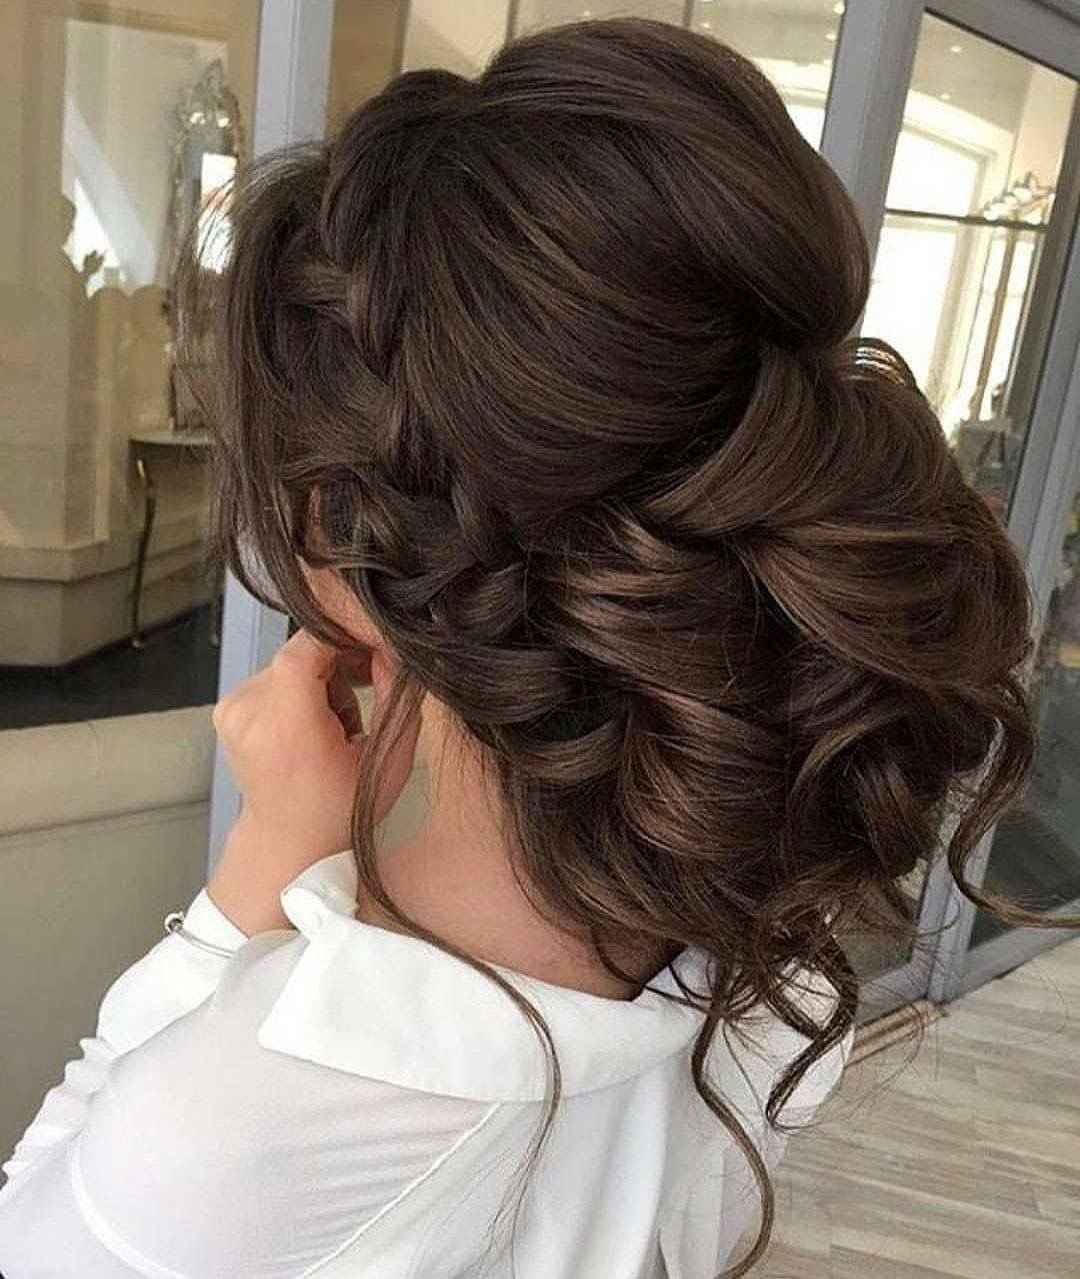 pin by joey barragan on wedding hairstyles in 2019 | bridal